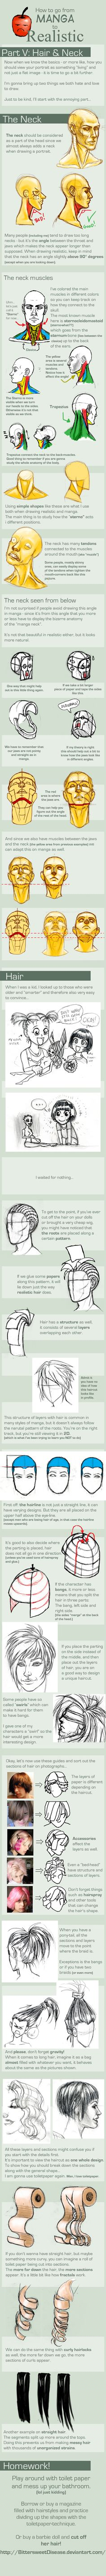 Head and Hair References